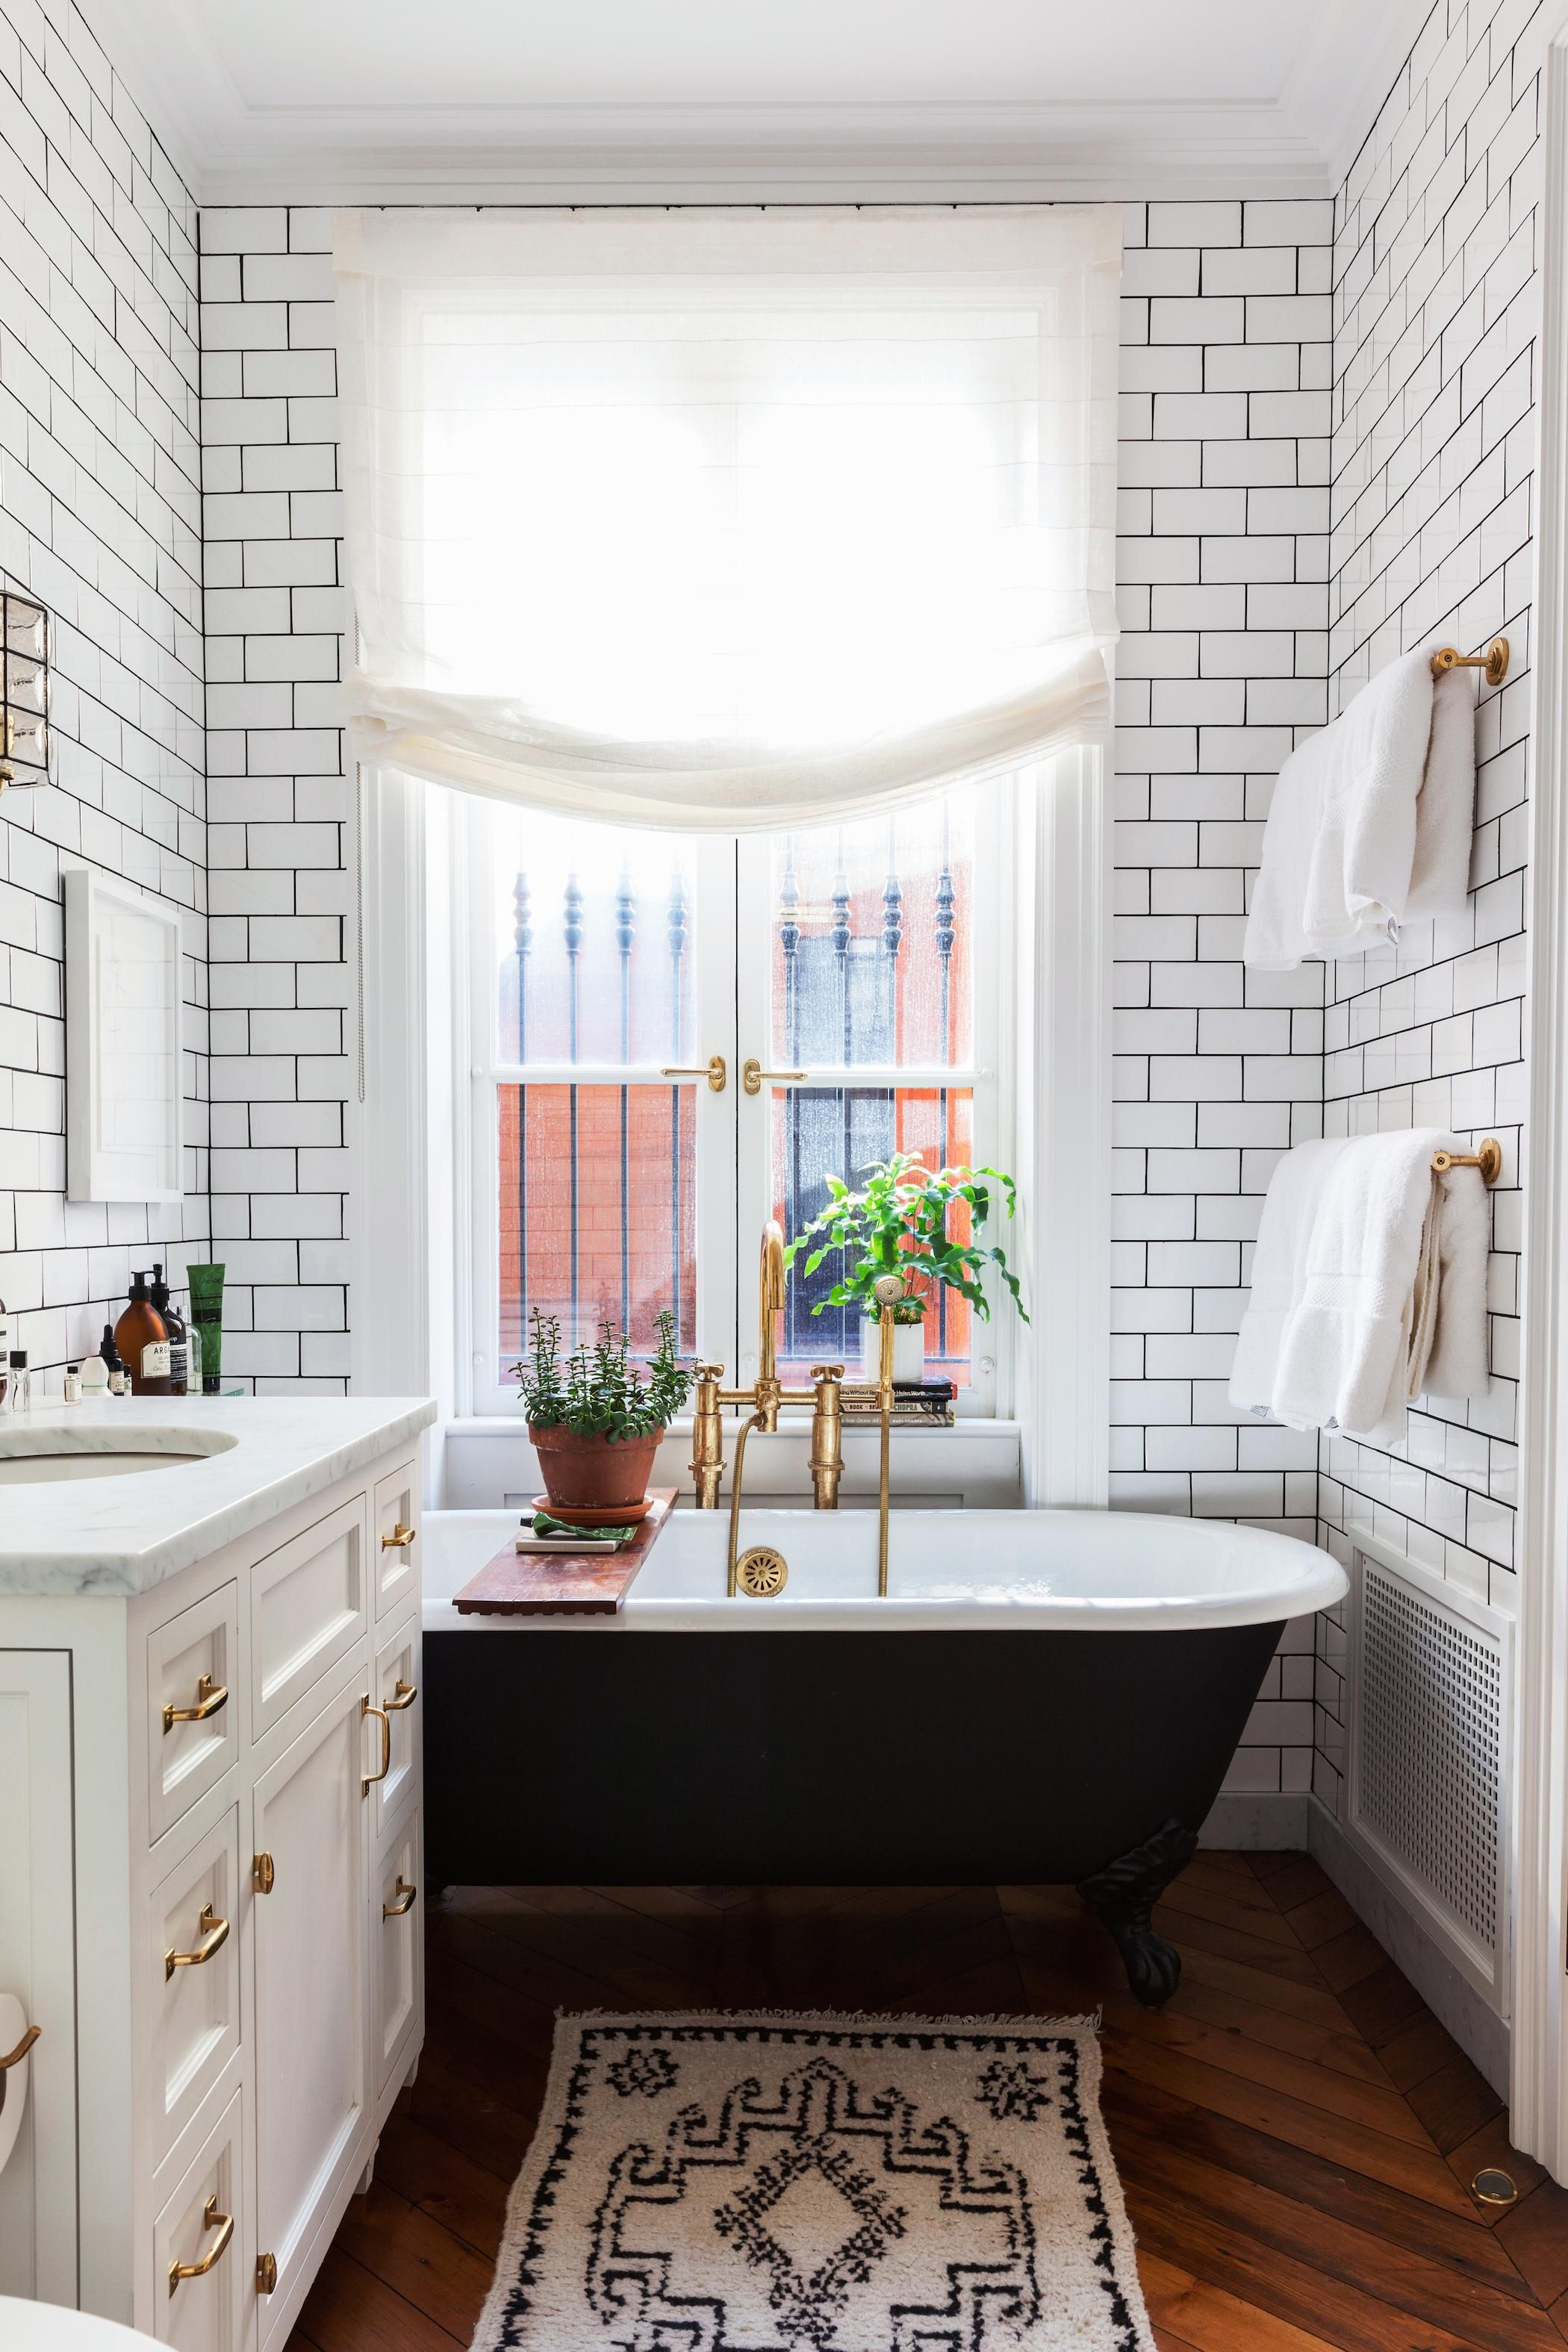 Bathroom Home Interior Design Love This Simple White Bathroom Inspire Bathrooms Home